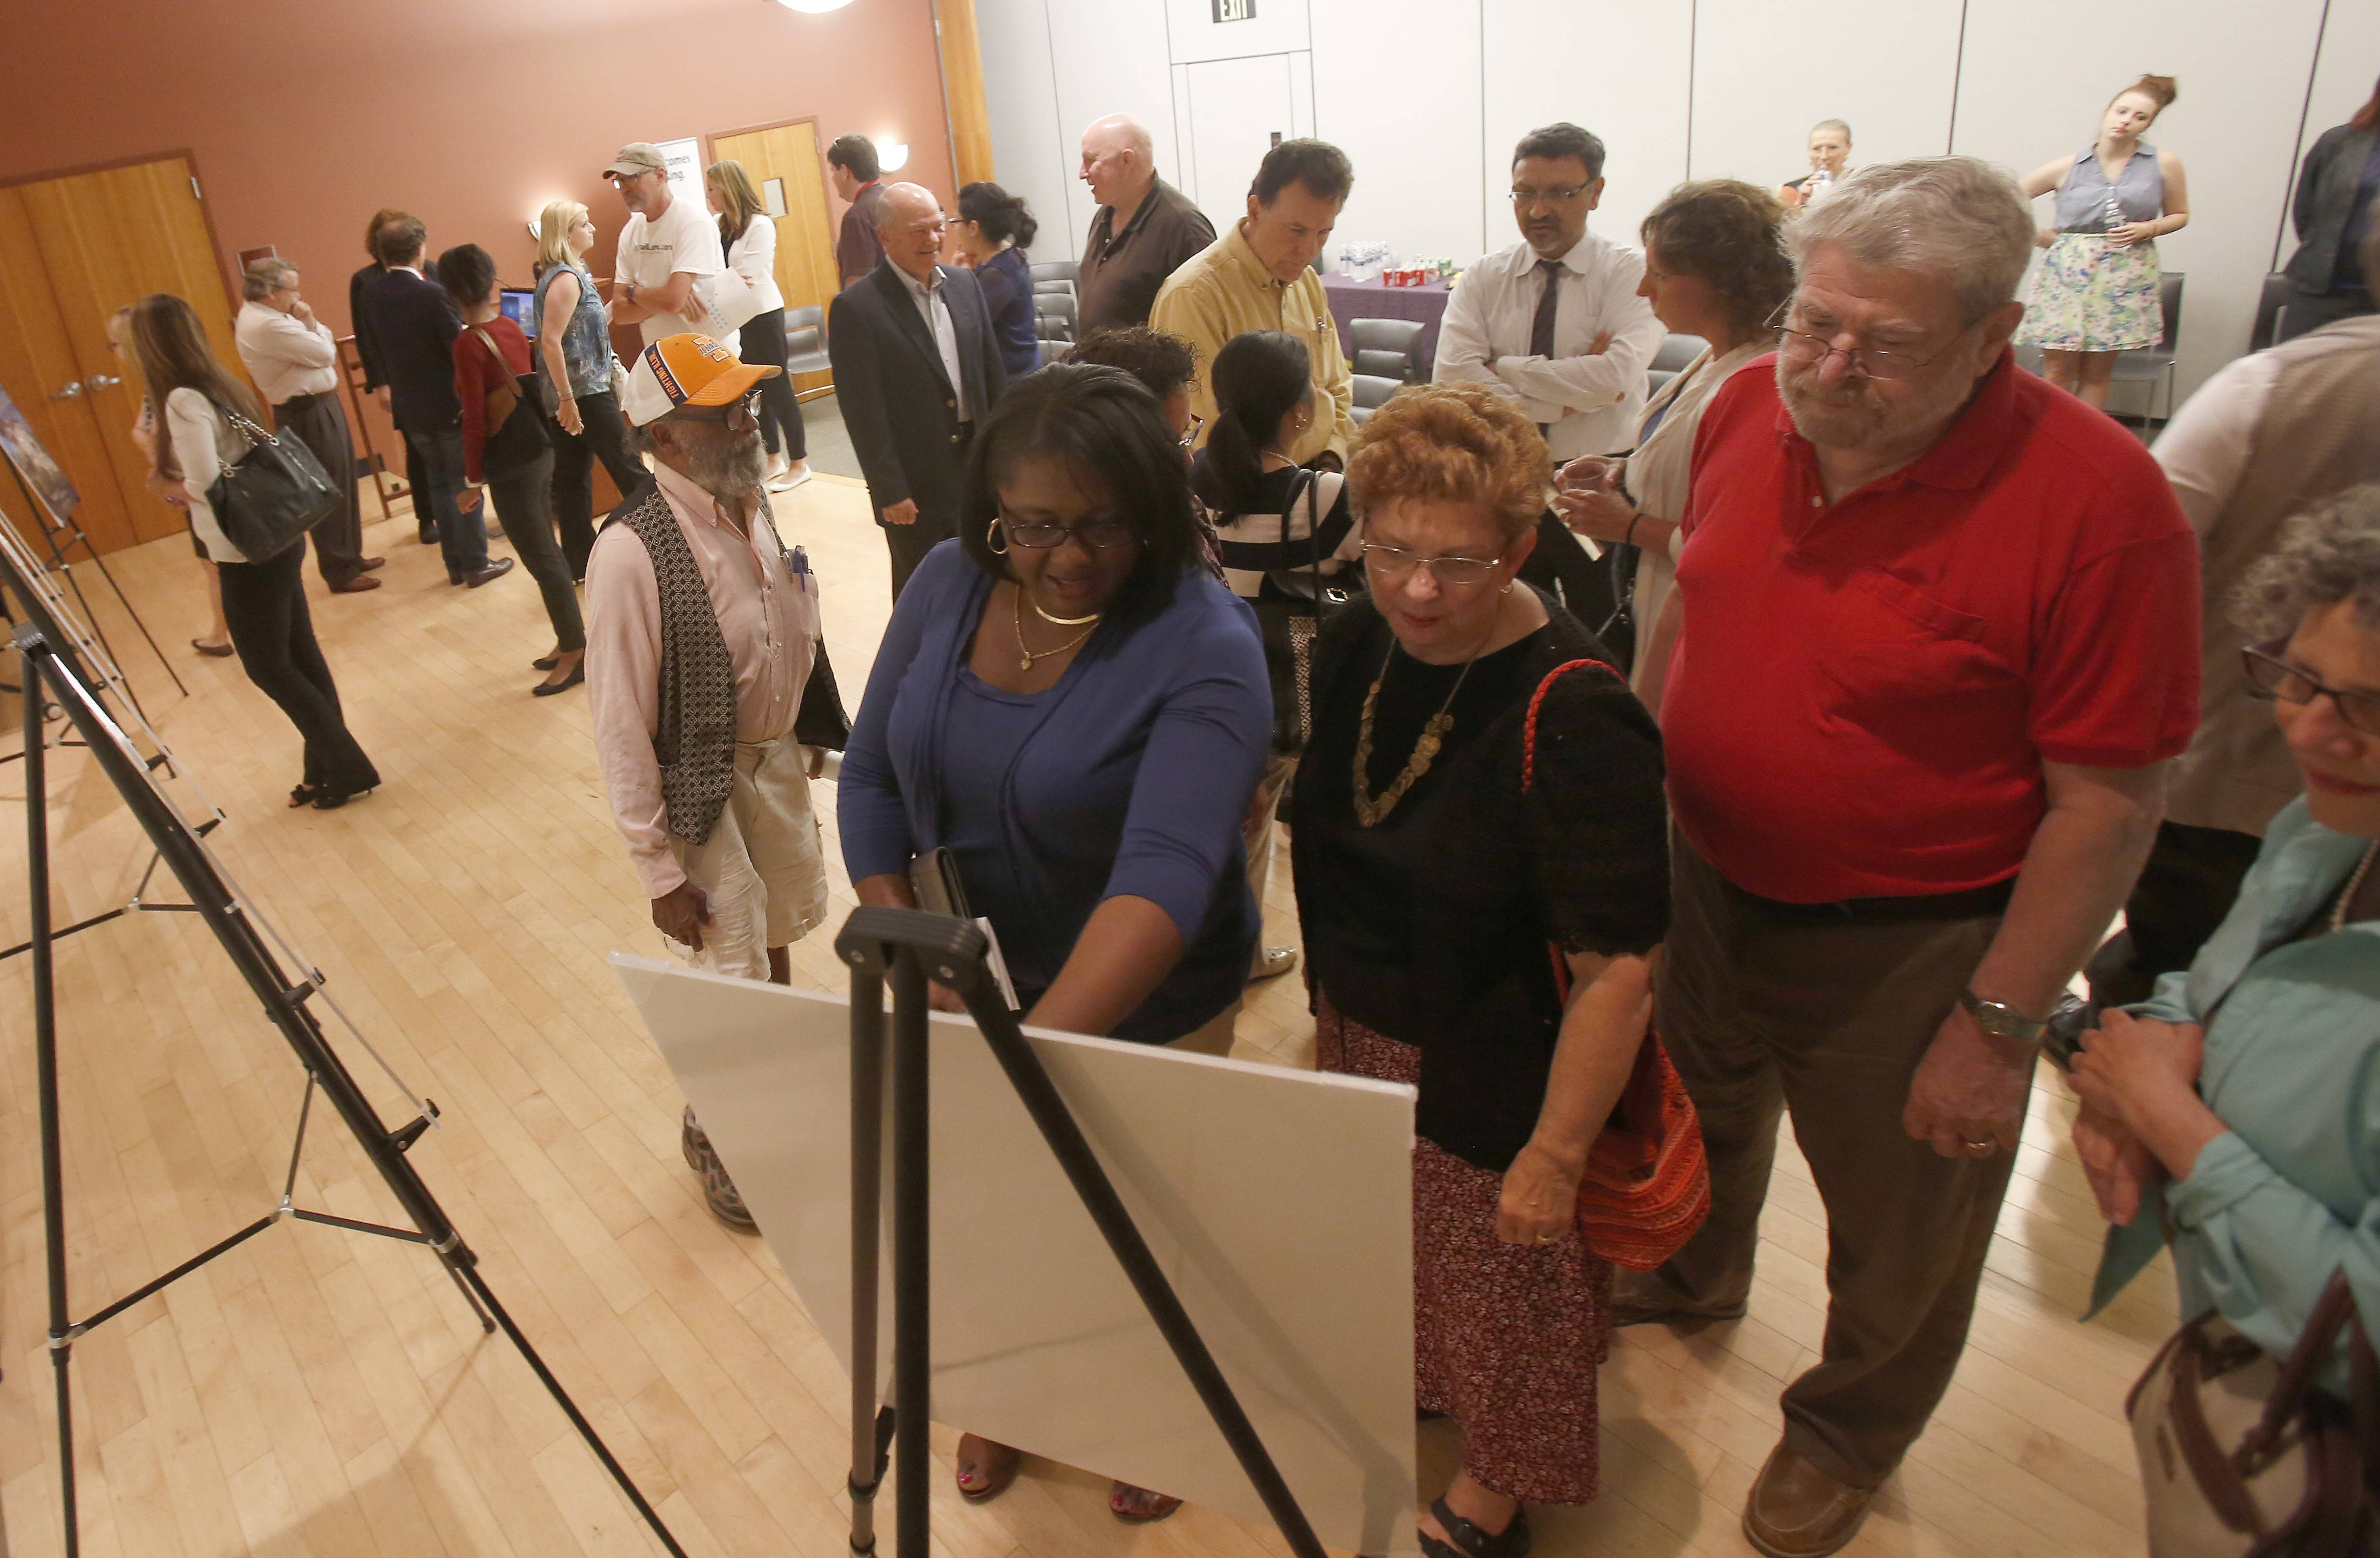 People look over the new ads for ELGINSTEAD campaign during the HOPE Fair Housing launch party for the Elginstead ad campaign Thursday at Gail Borden Public in Elgin.